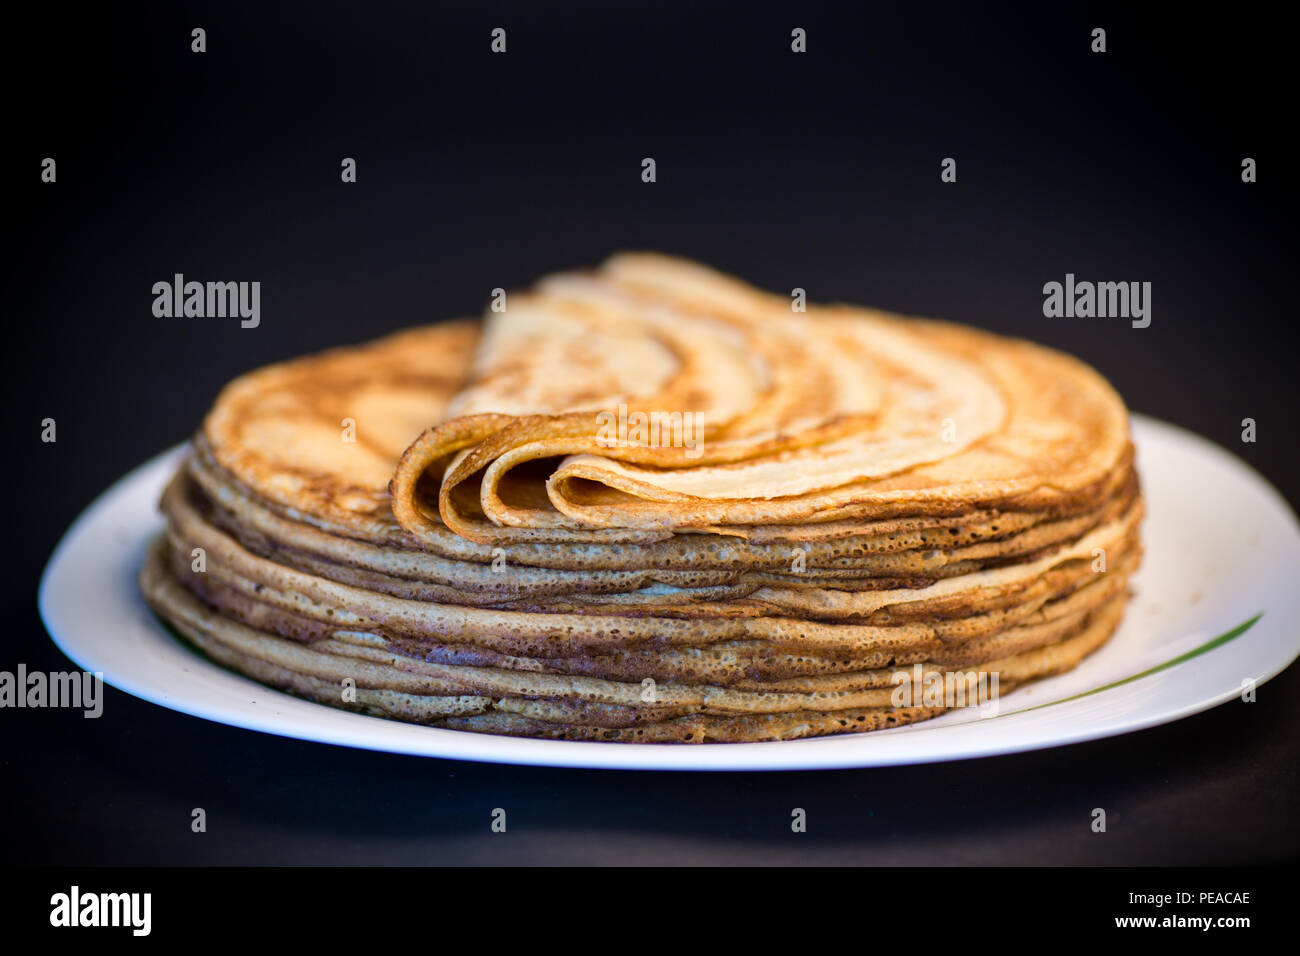 big high stack of thin pancakes in a plate on a black background - Stock Image